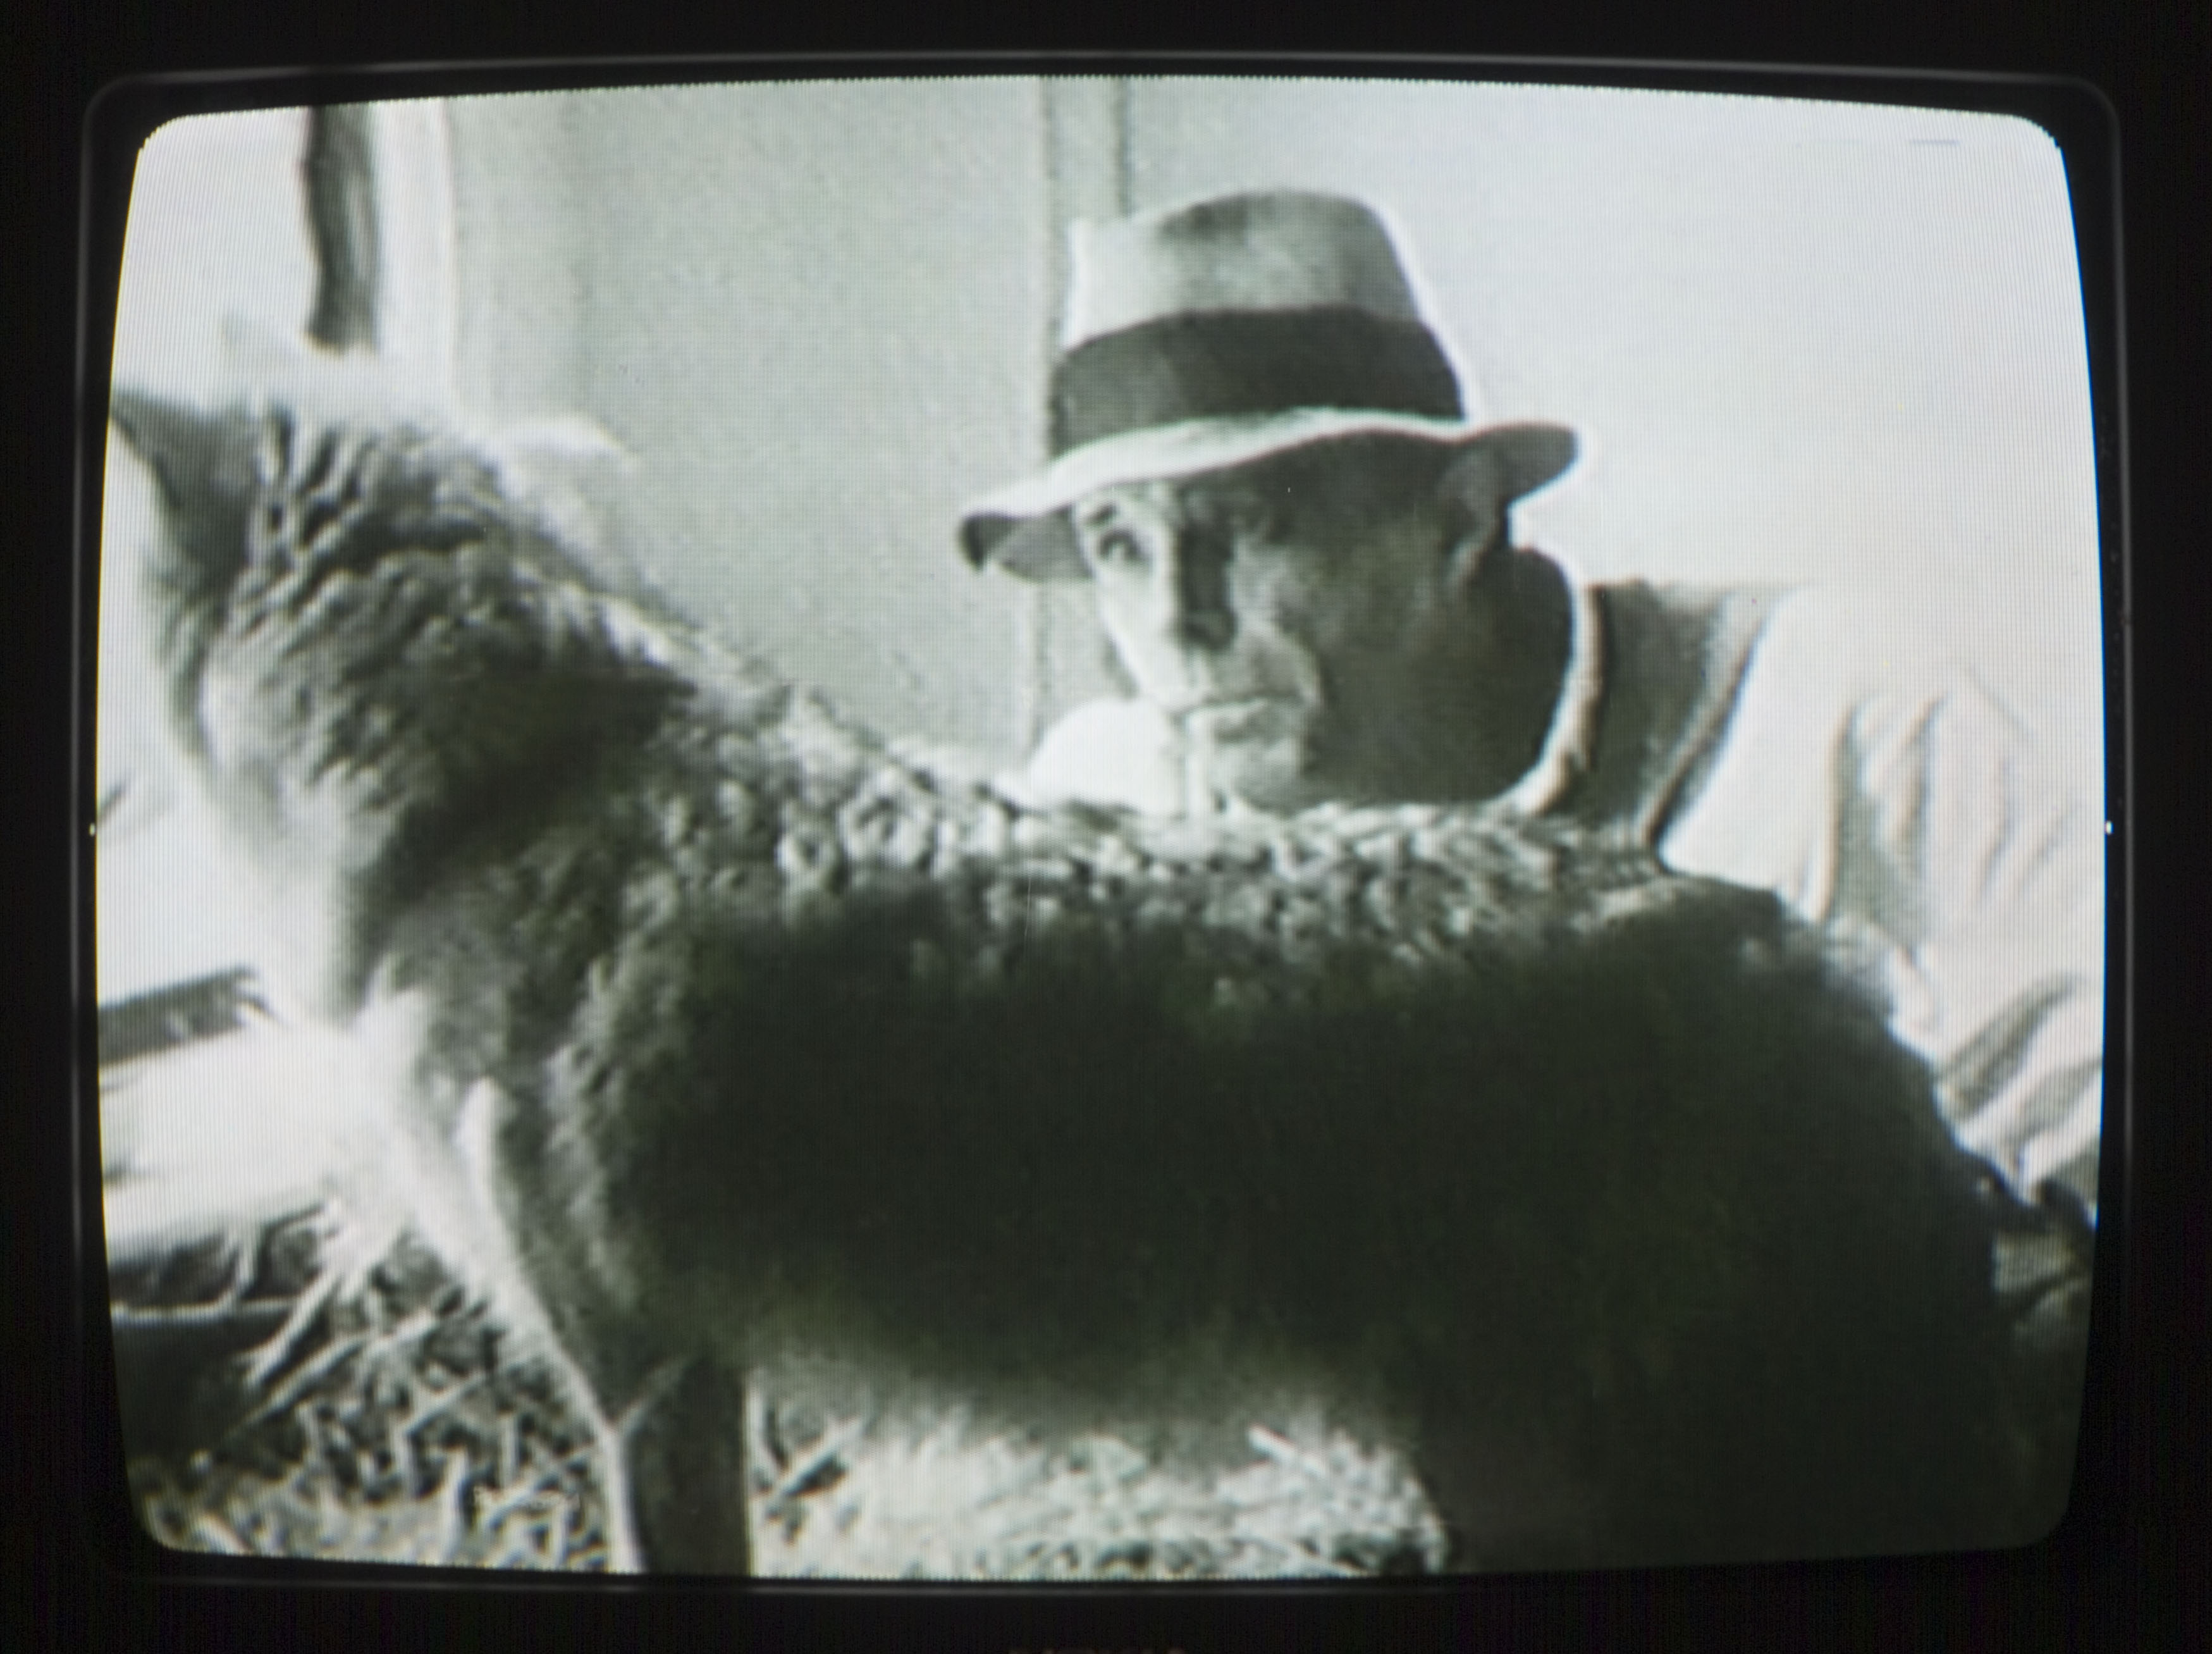 Joseph Beuys Coyote